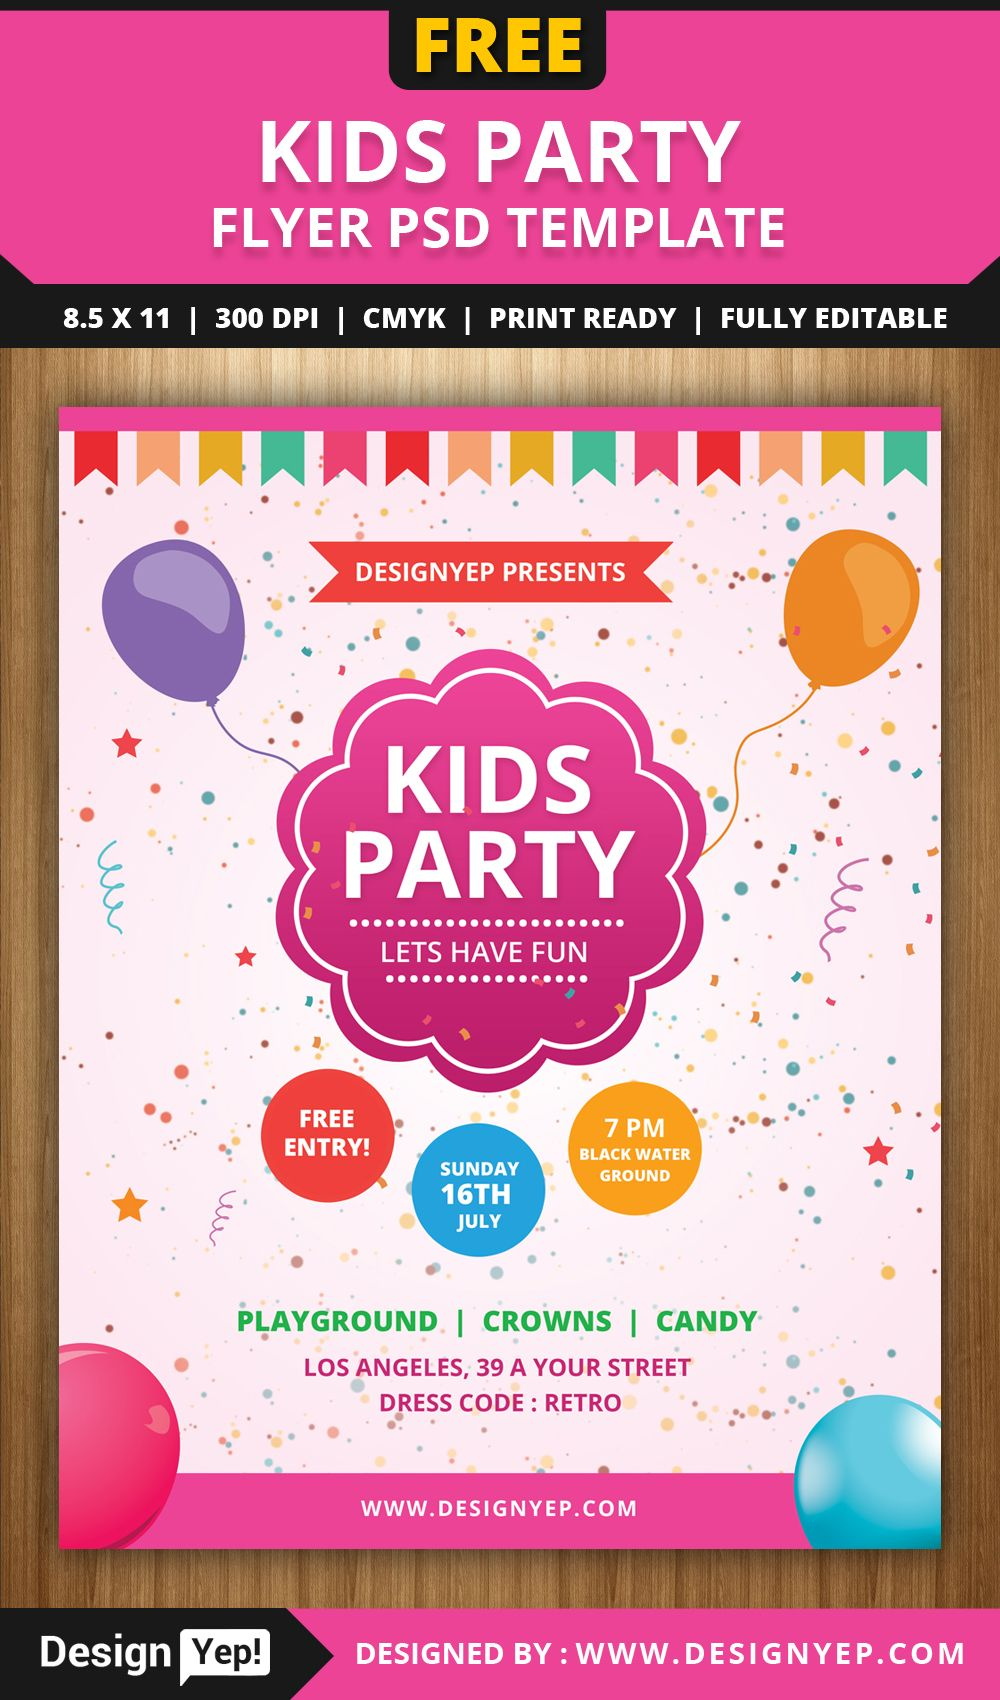 Free Kids Party Flyer PSD Template | Free Flyers | Pinterest ...